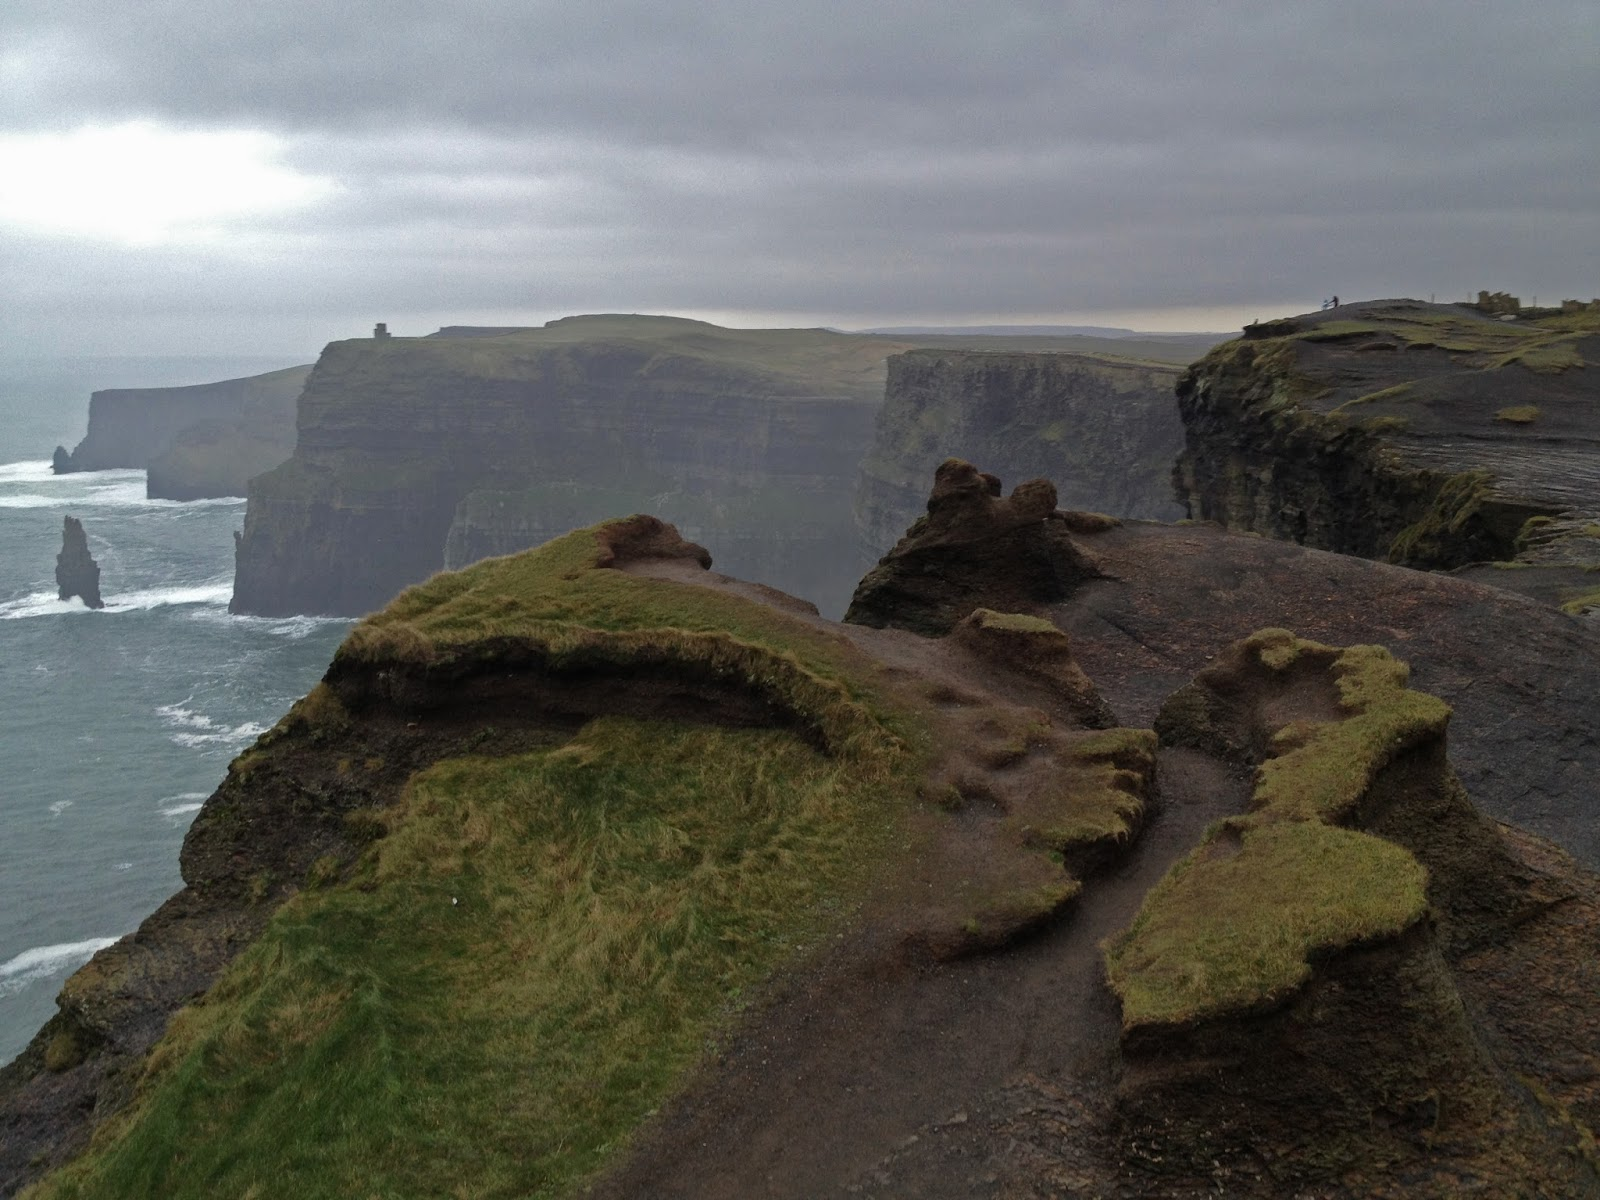 The Cliffs of Moher - the incredible beauty in county Clare